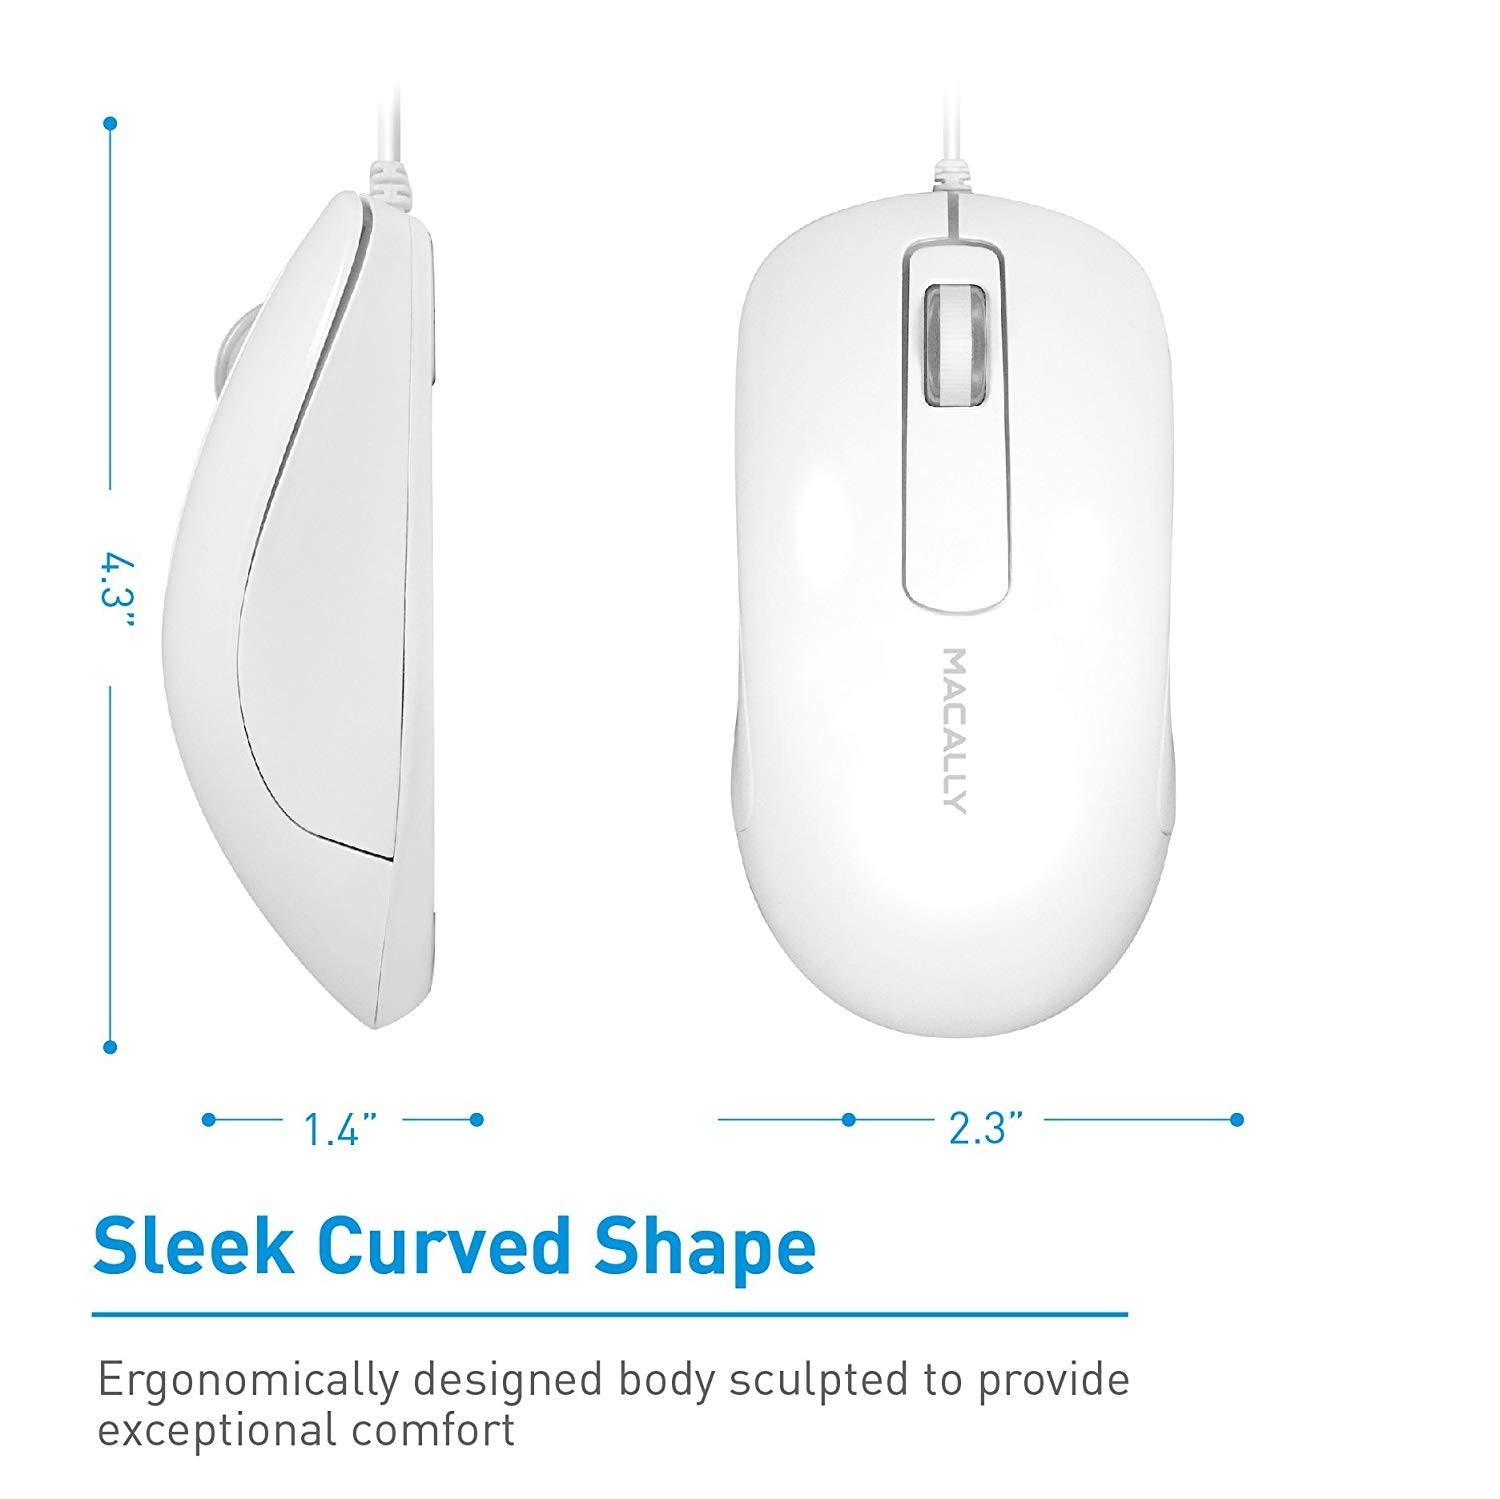 Macally 3-Button Optical USB Wired Computer Mouse with 5-Foot Cord, Compatible with PCs, Apple Macs, Desktops, Laptops - White, ICEMOUSE3